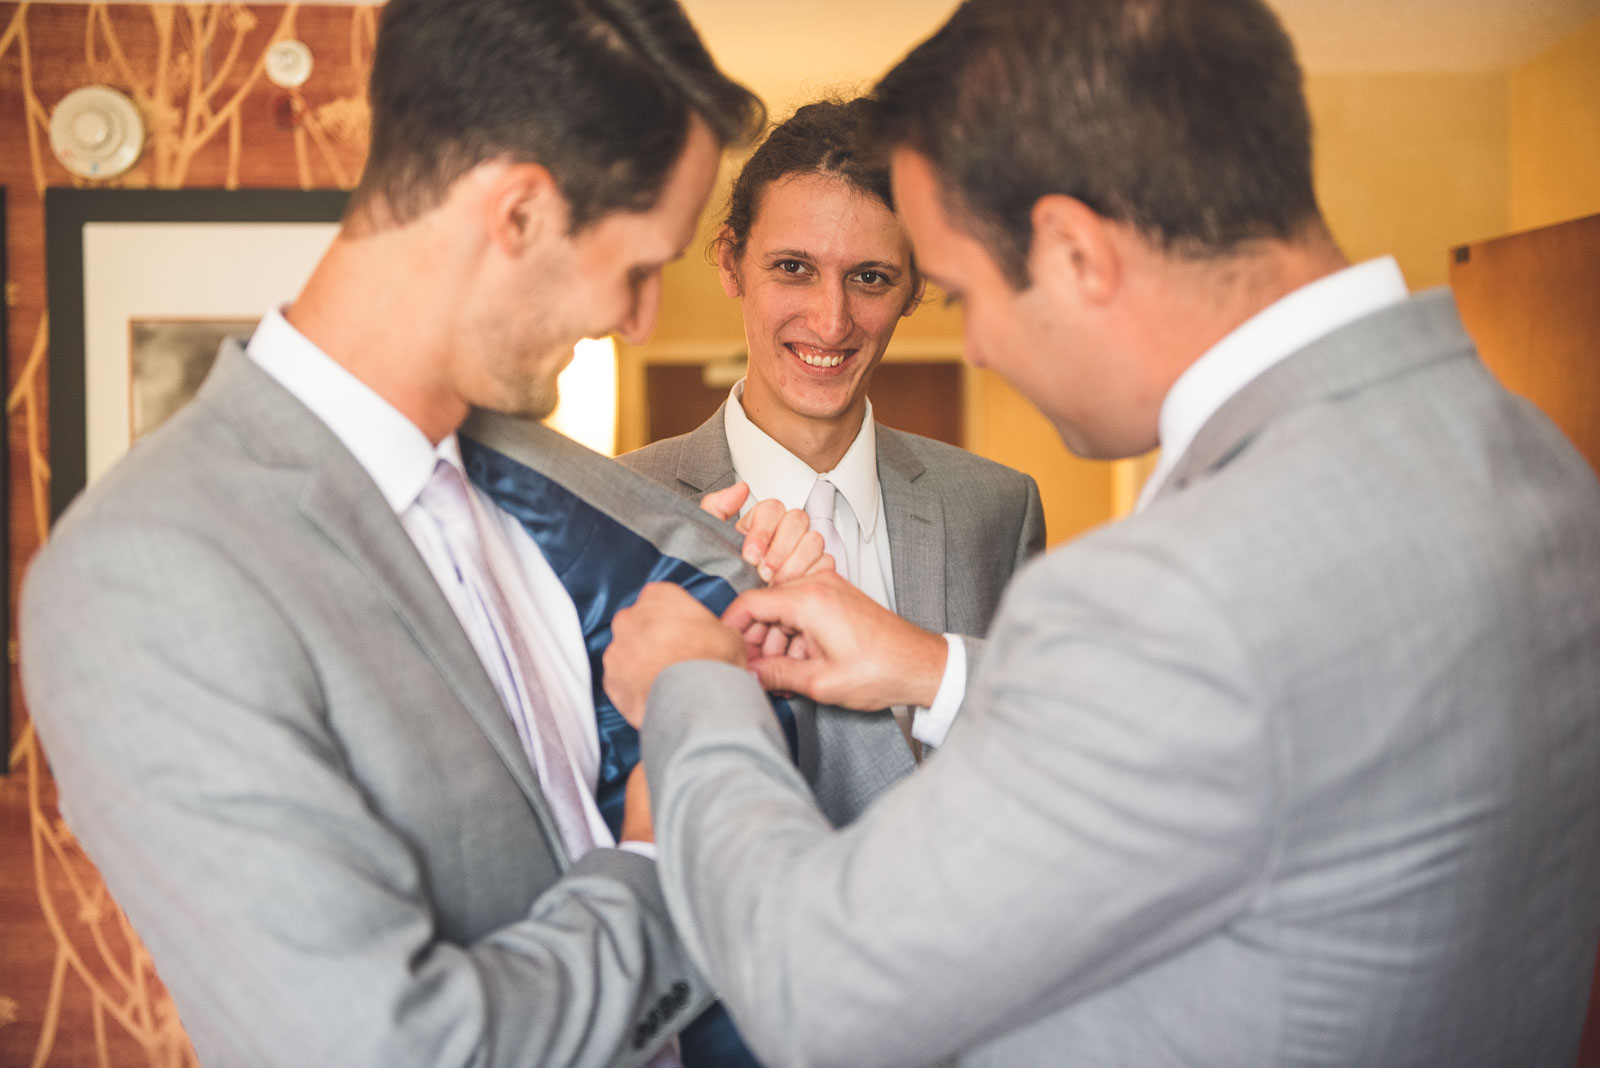 Groom adds Star Wars bling to Suit